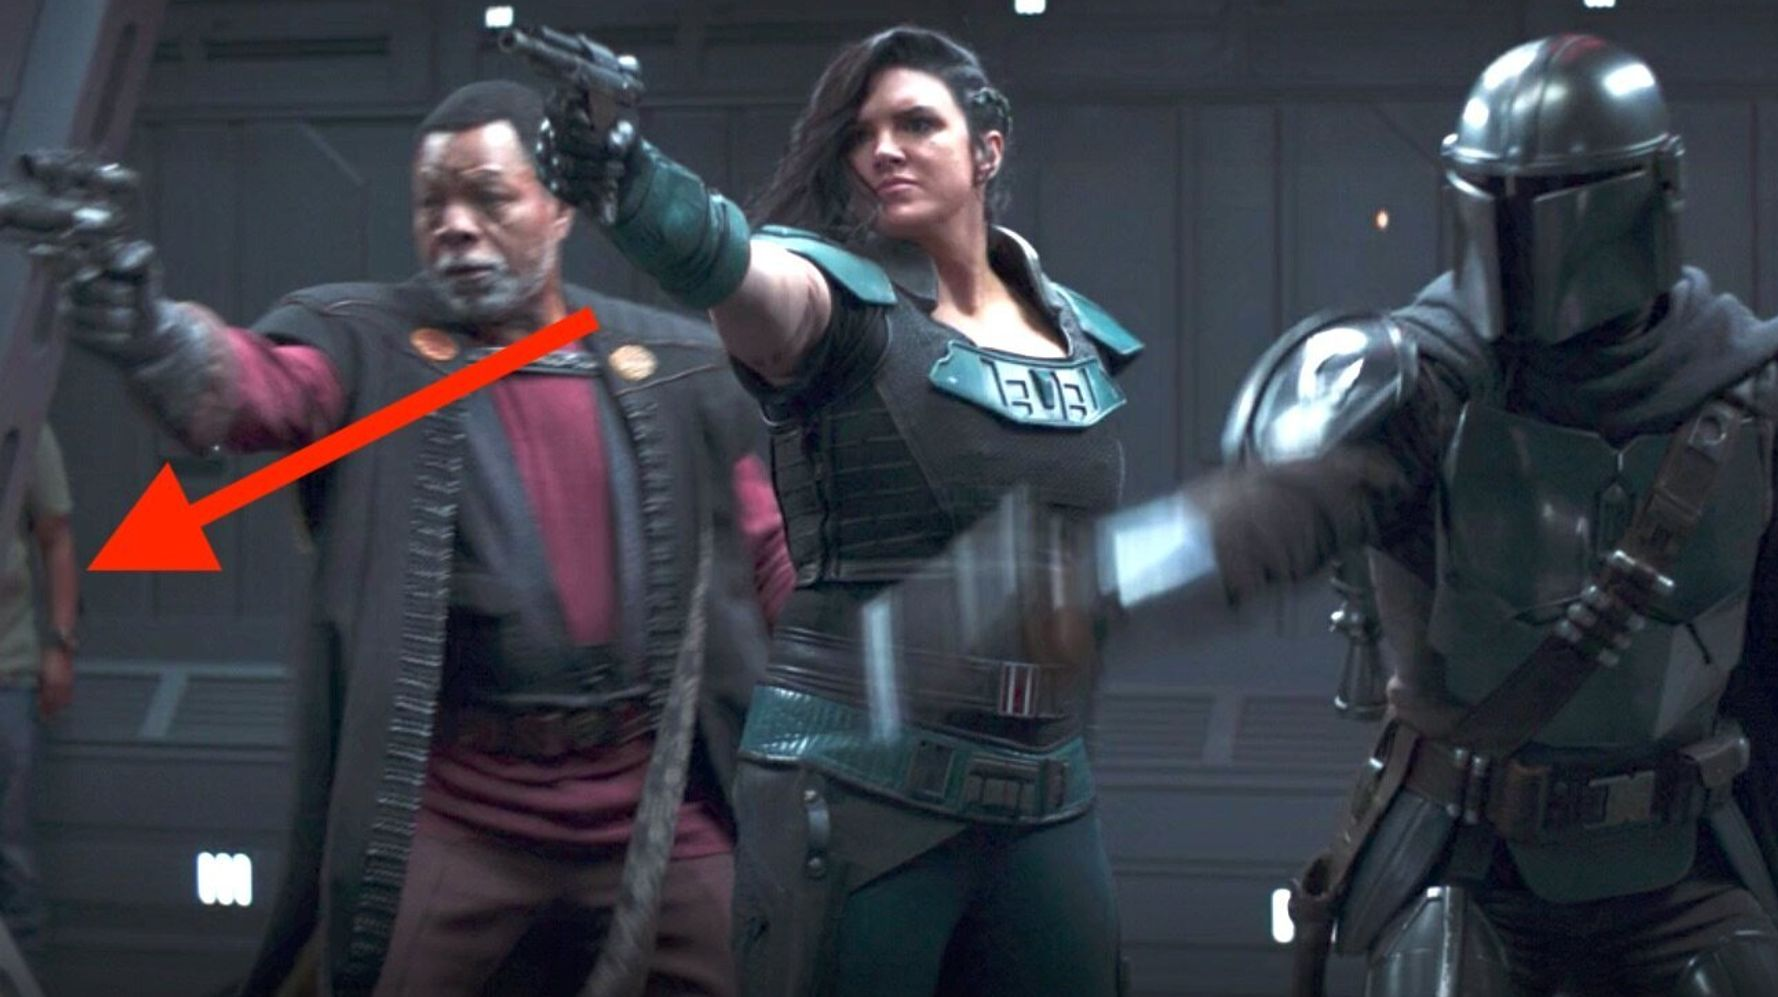 WHOOPS! 'Star Wars' Fans Spotted A Big Goof In Latest 'Mandalorian' Episode